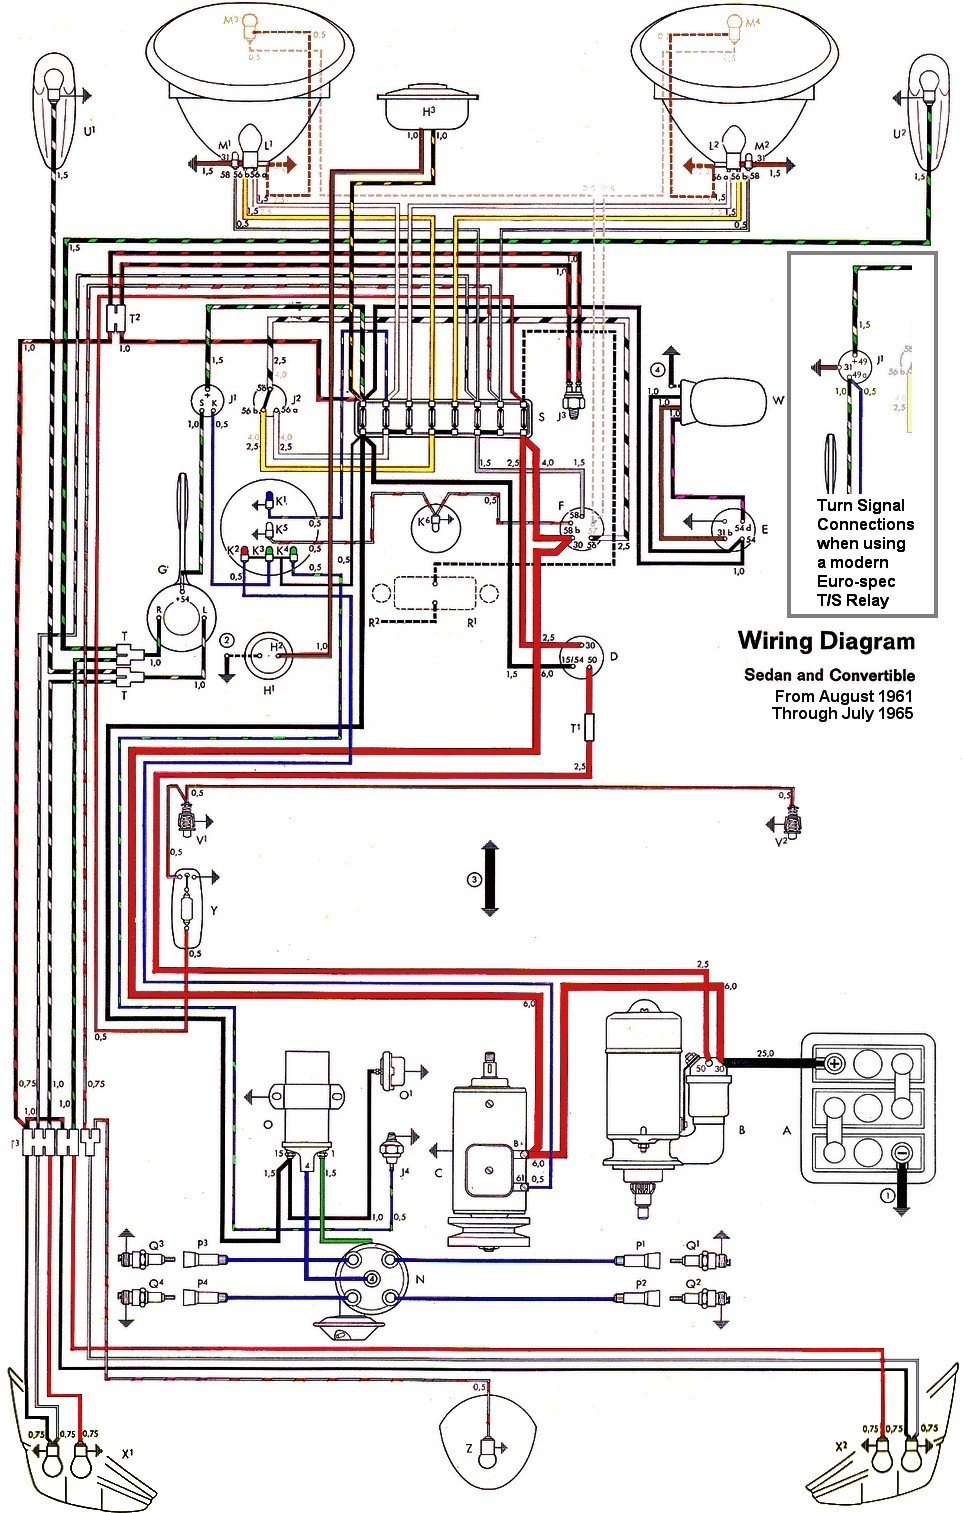 bug_62 65withinset wiring diagram vw beetle sedan and convertible 1961 1965 vw 1970 vw beetle wiring diagram at edmiracle.co